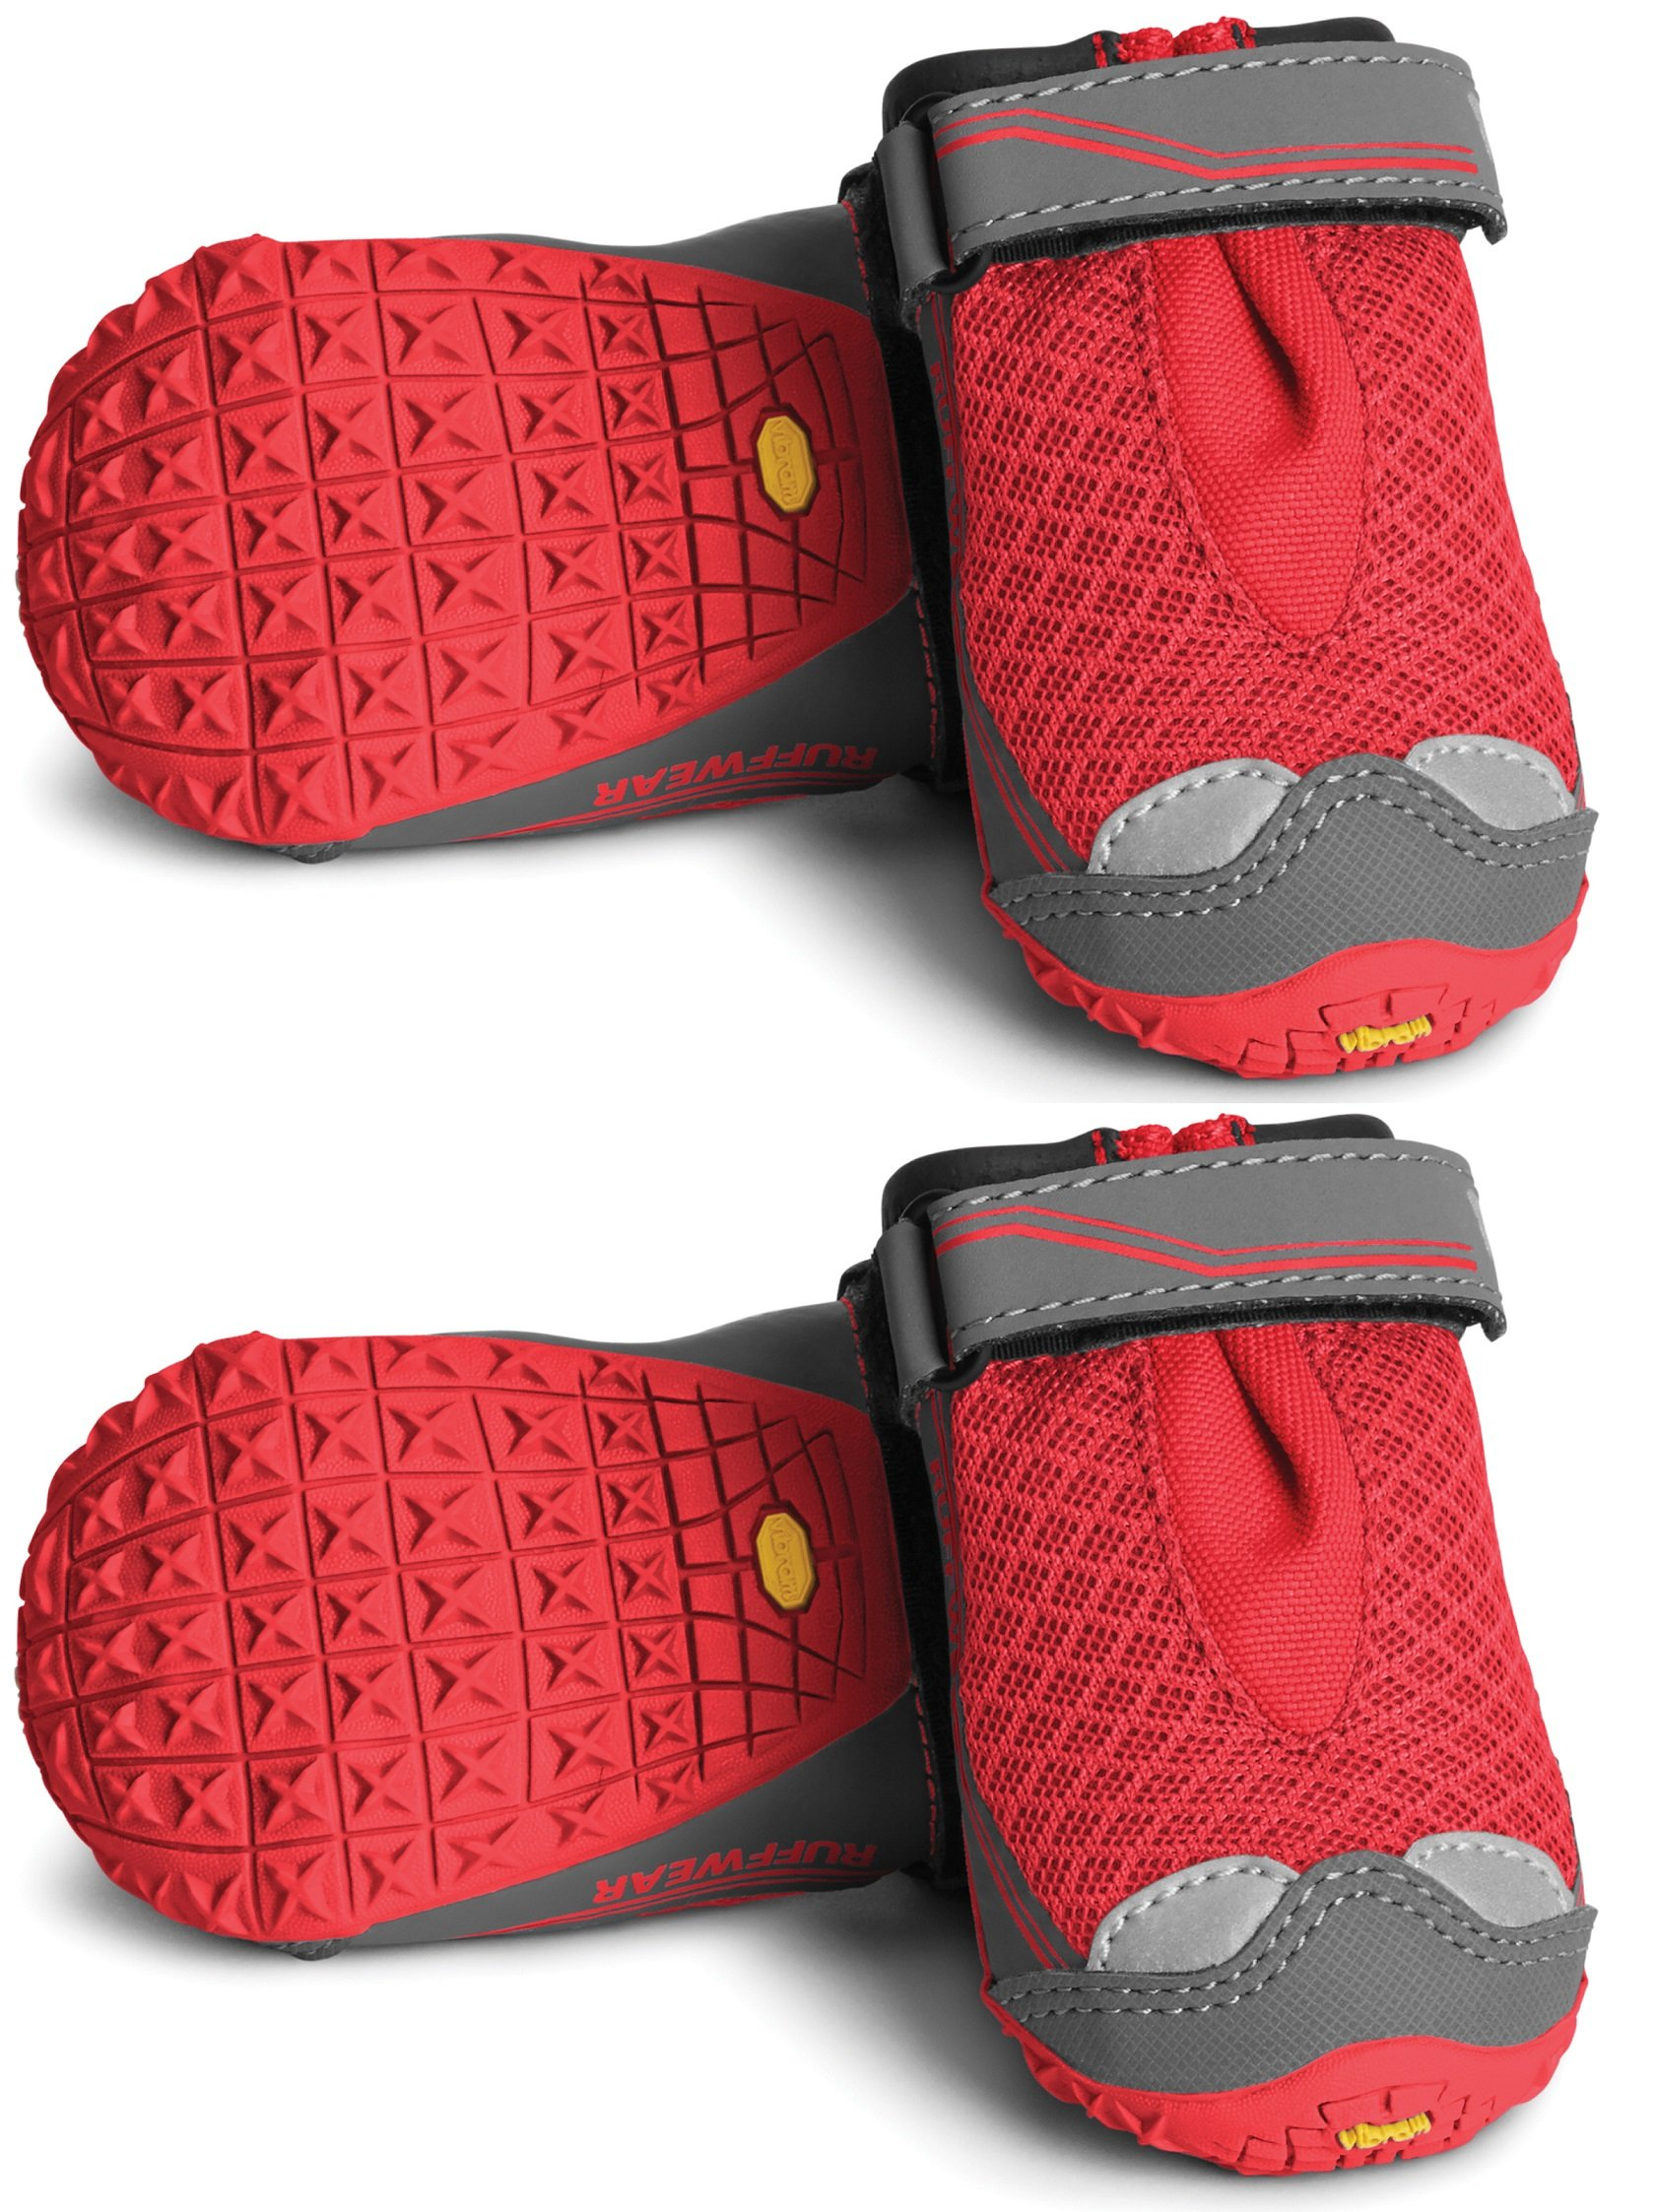 RUFFWEAR Grip TREX Dog Boots All Terrain PAW Protection Colors Set of 4 (3.25-Inch, New Red Currant)